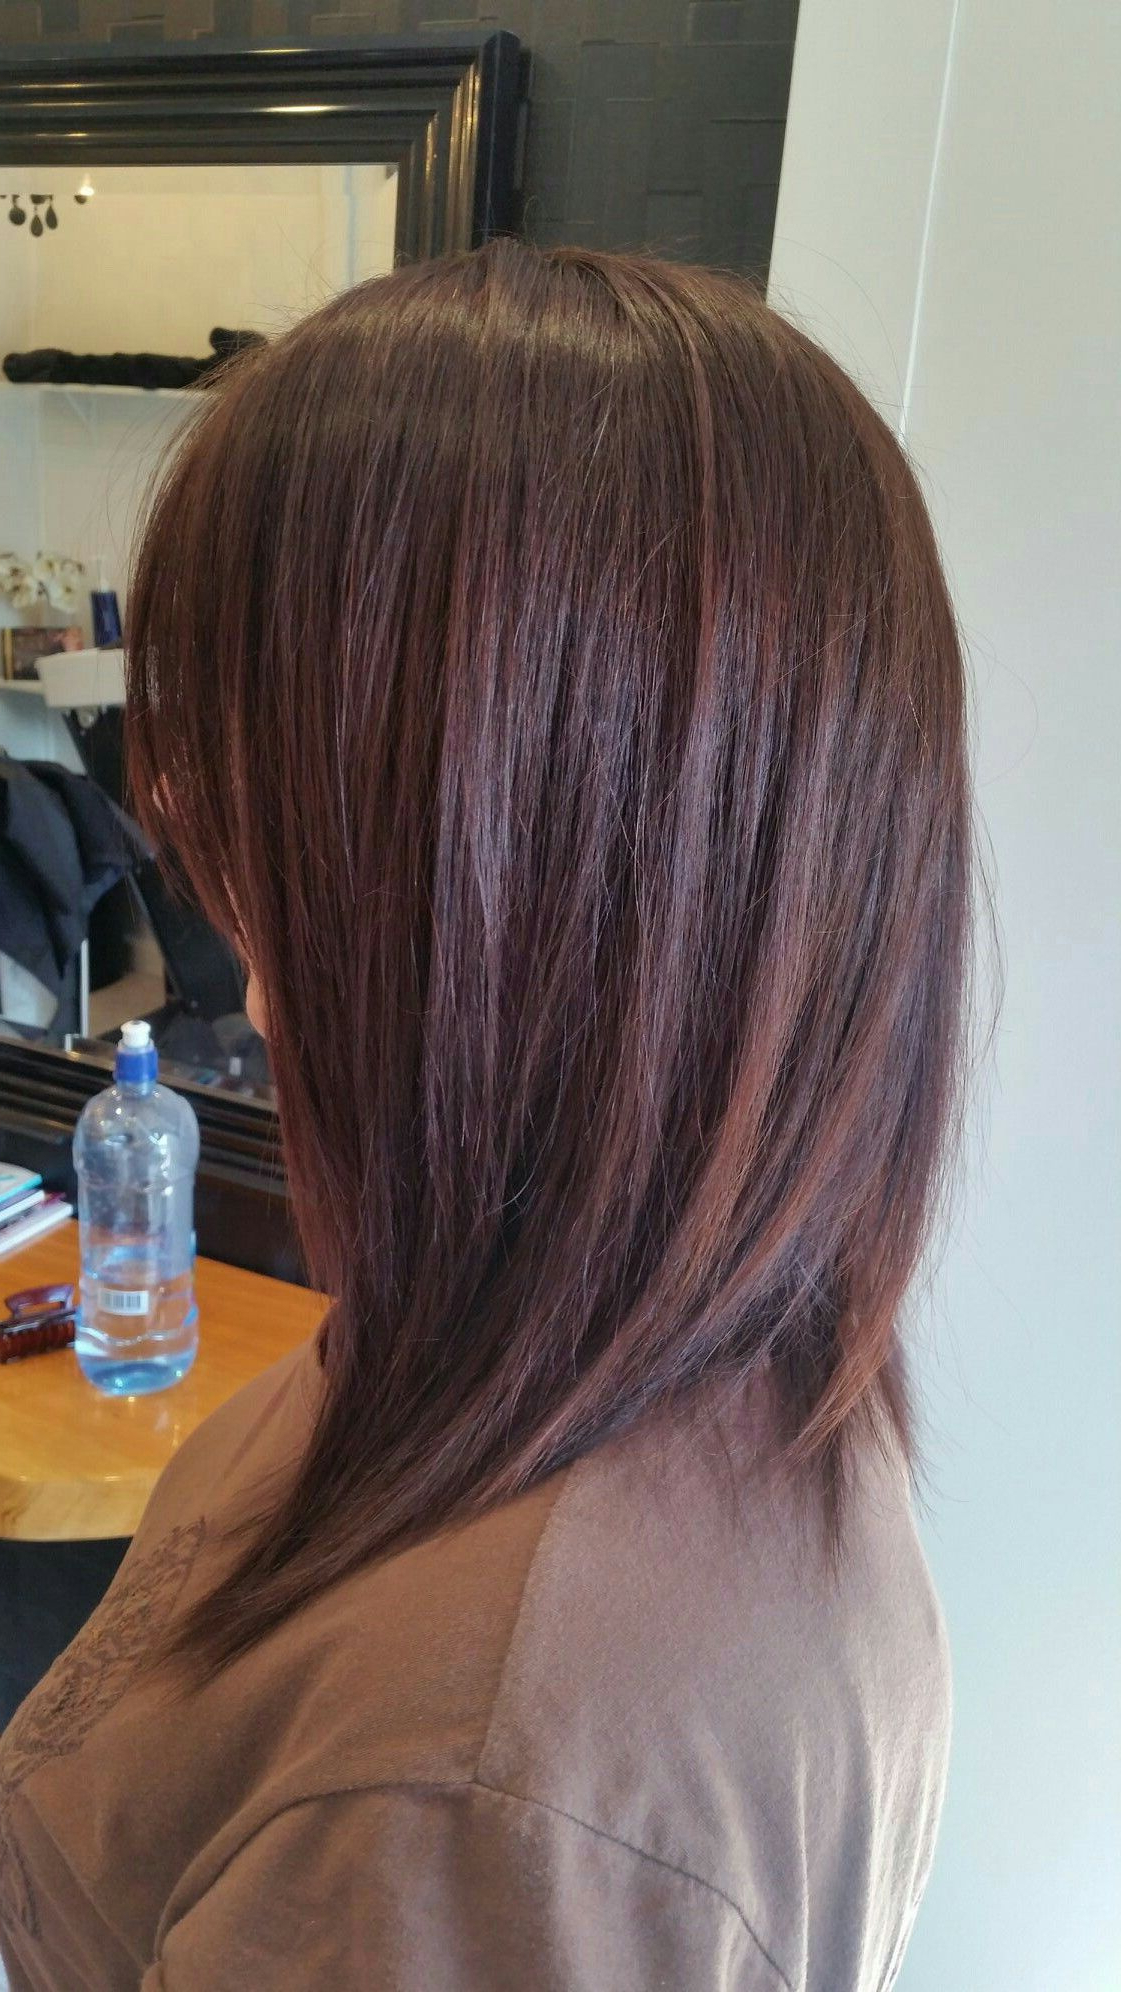 Hairstyles : Light Brown Hair Bob Smart Multi Colour Mix Of Highs Pertaining To Popular Multi Layered Mix Long Hairstyles (View 15 of 20)